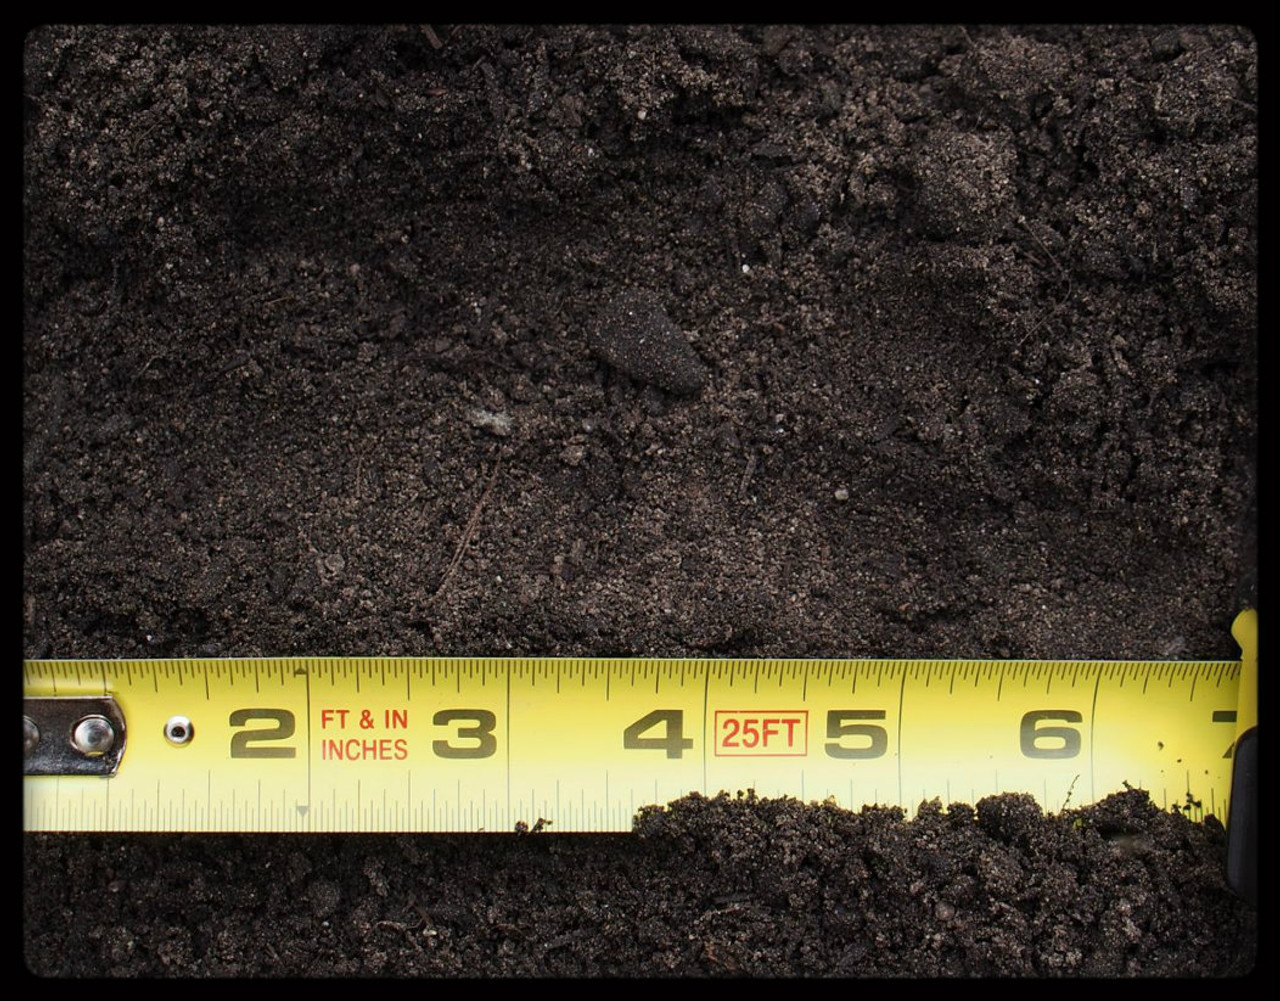 Turf Blend Soil scale photo